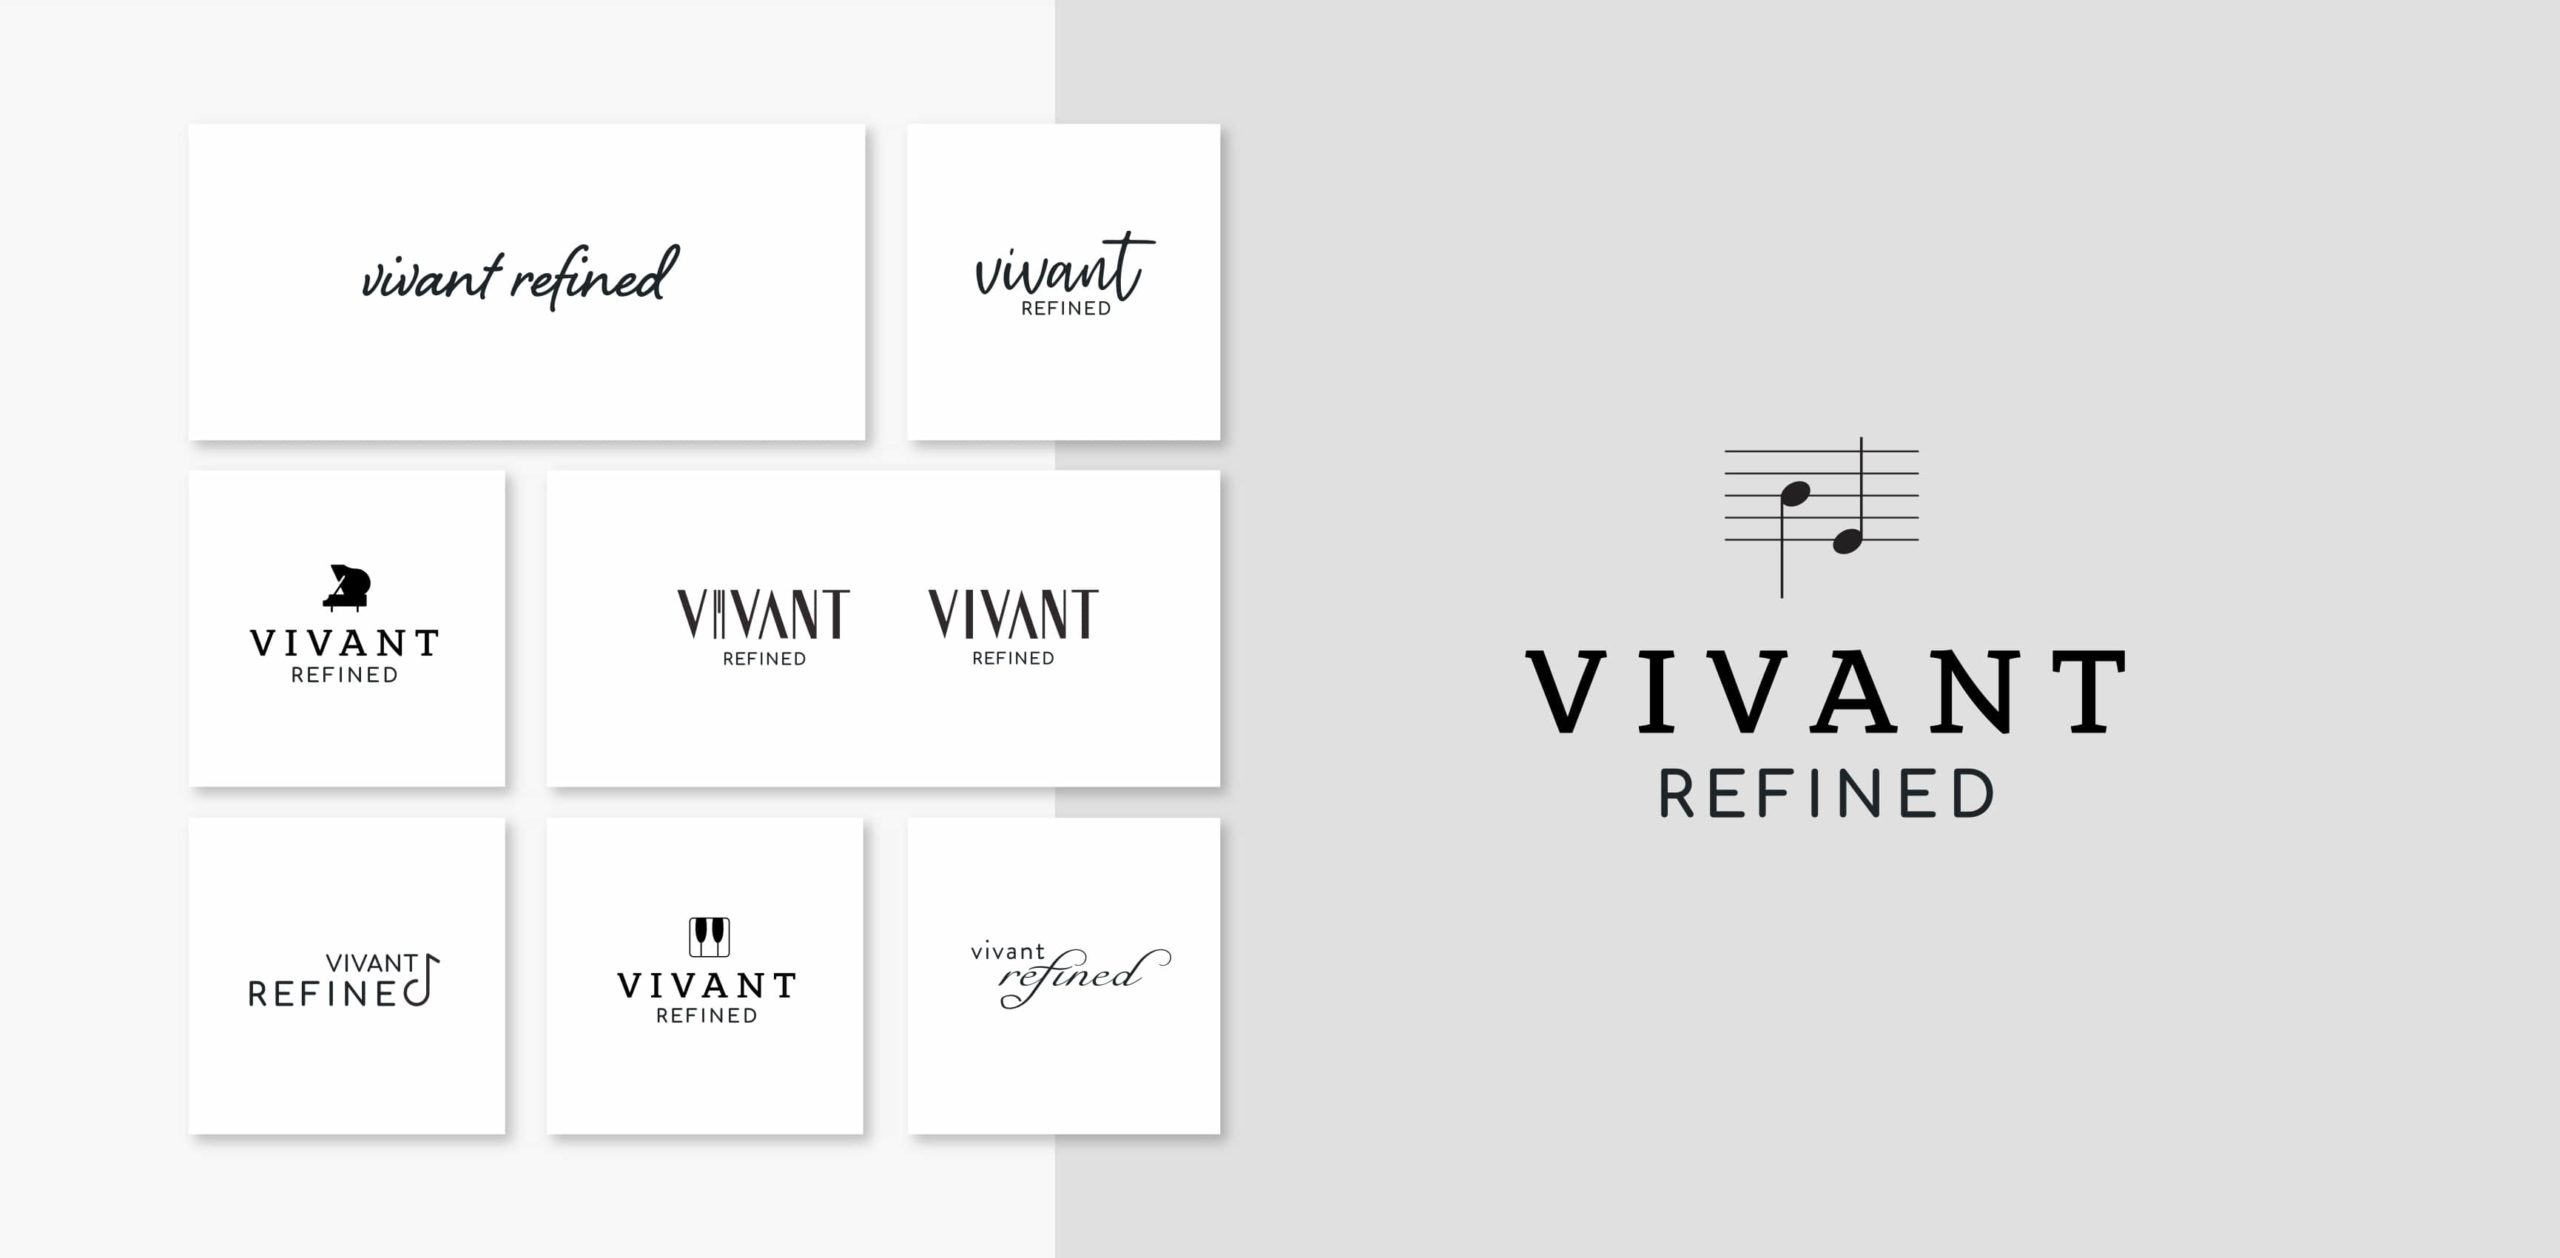 vivant-refined-gallery-wide-02